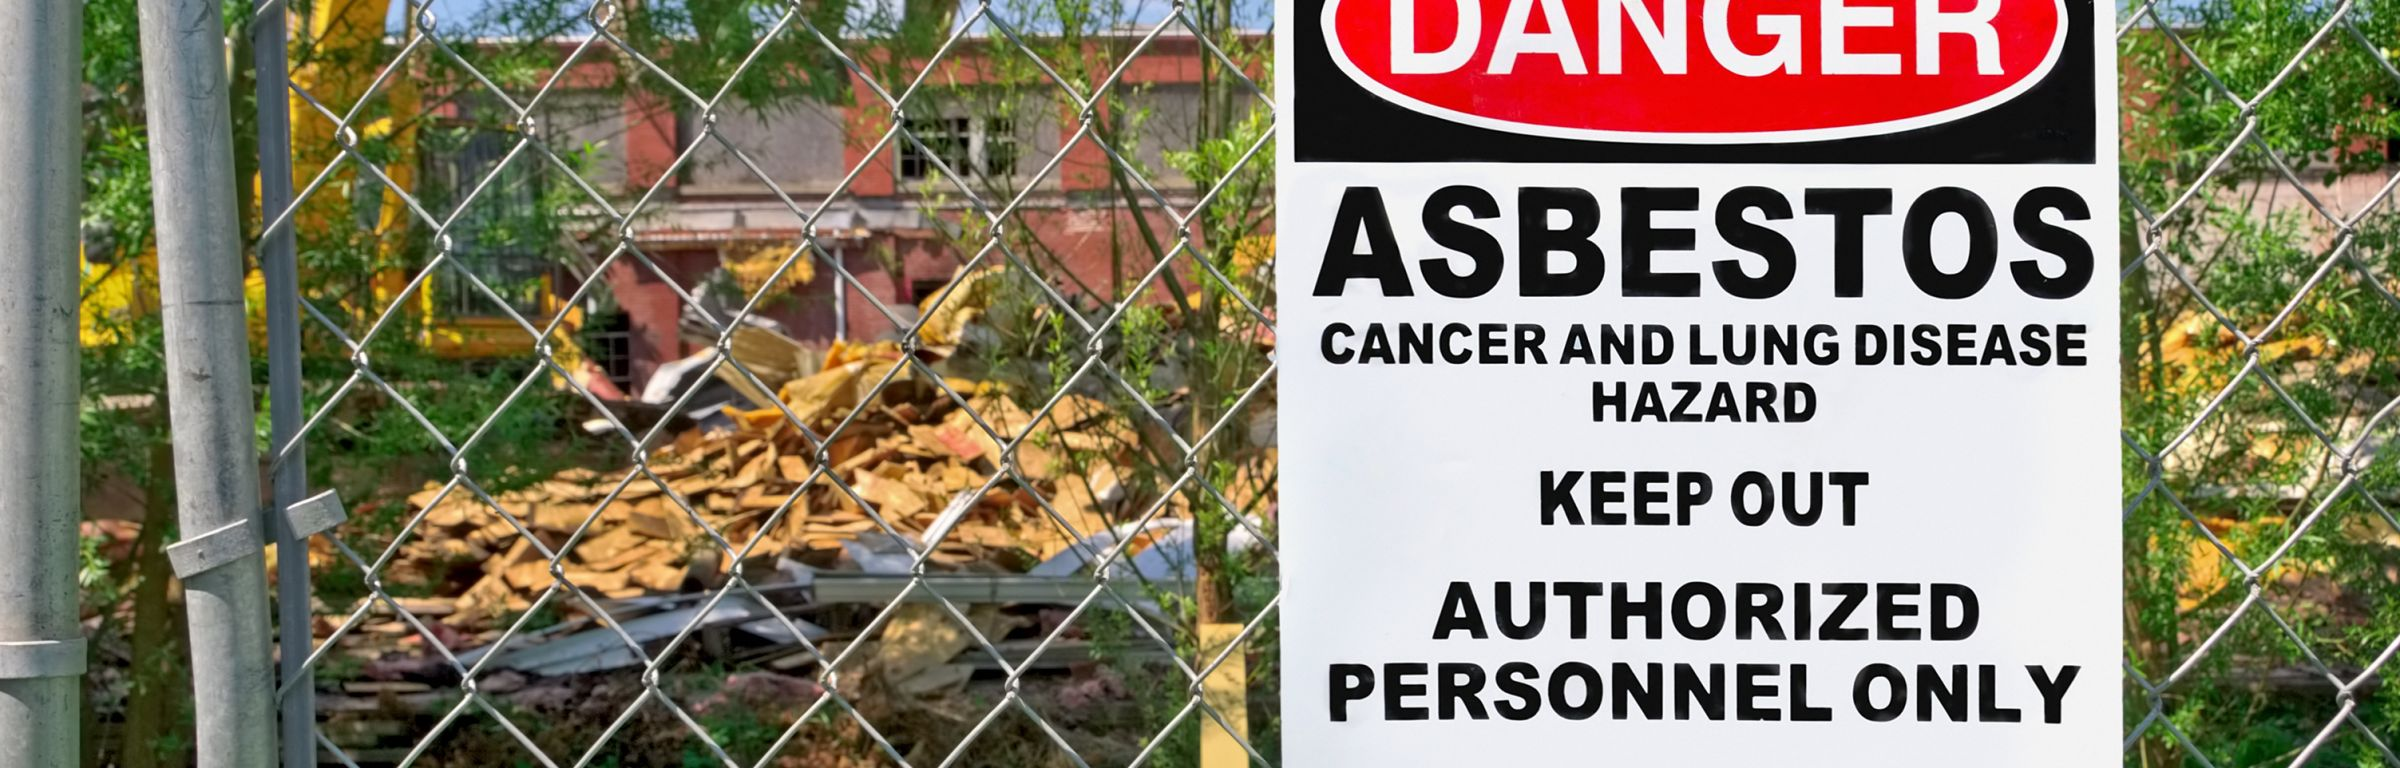 Danger sign of asbestos outside restricted area